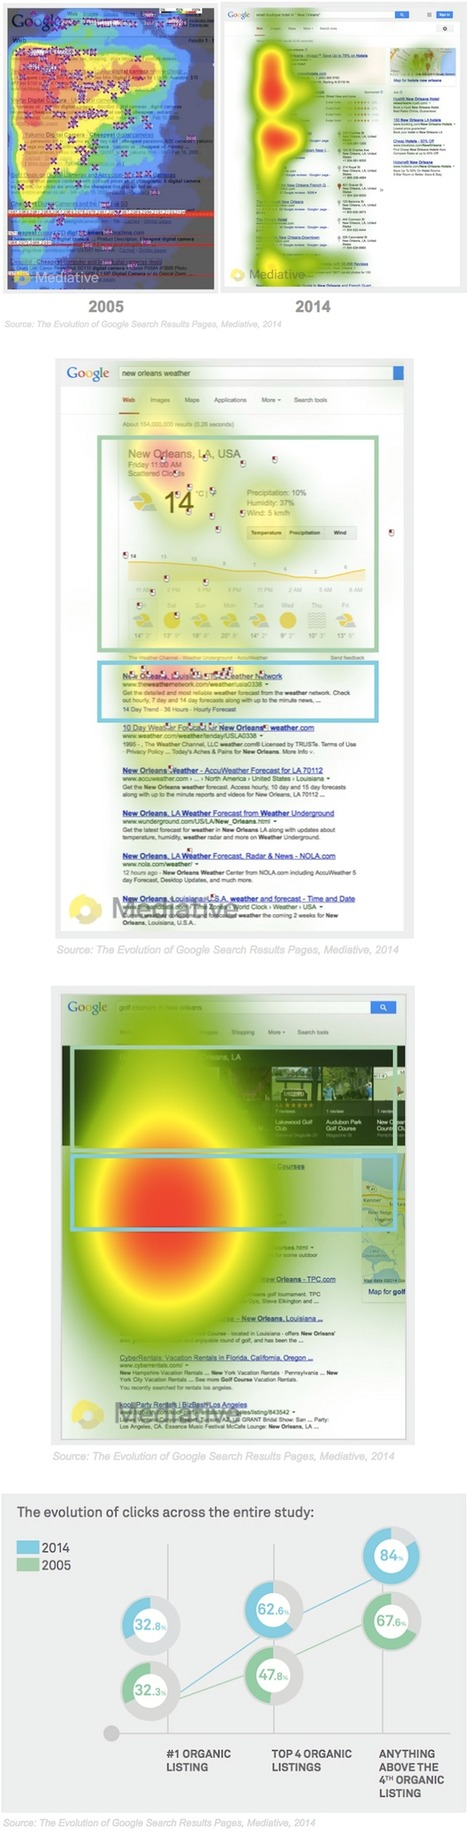 Eye-Tracking Study: How Users View Google Search Result Pages - Profs | GooglePlus News | Scoop.it